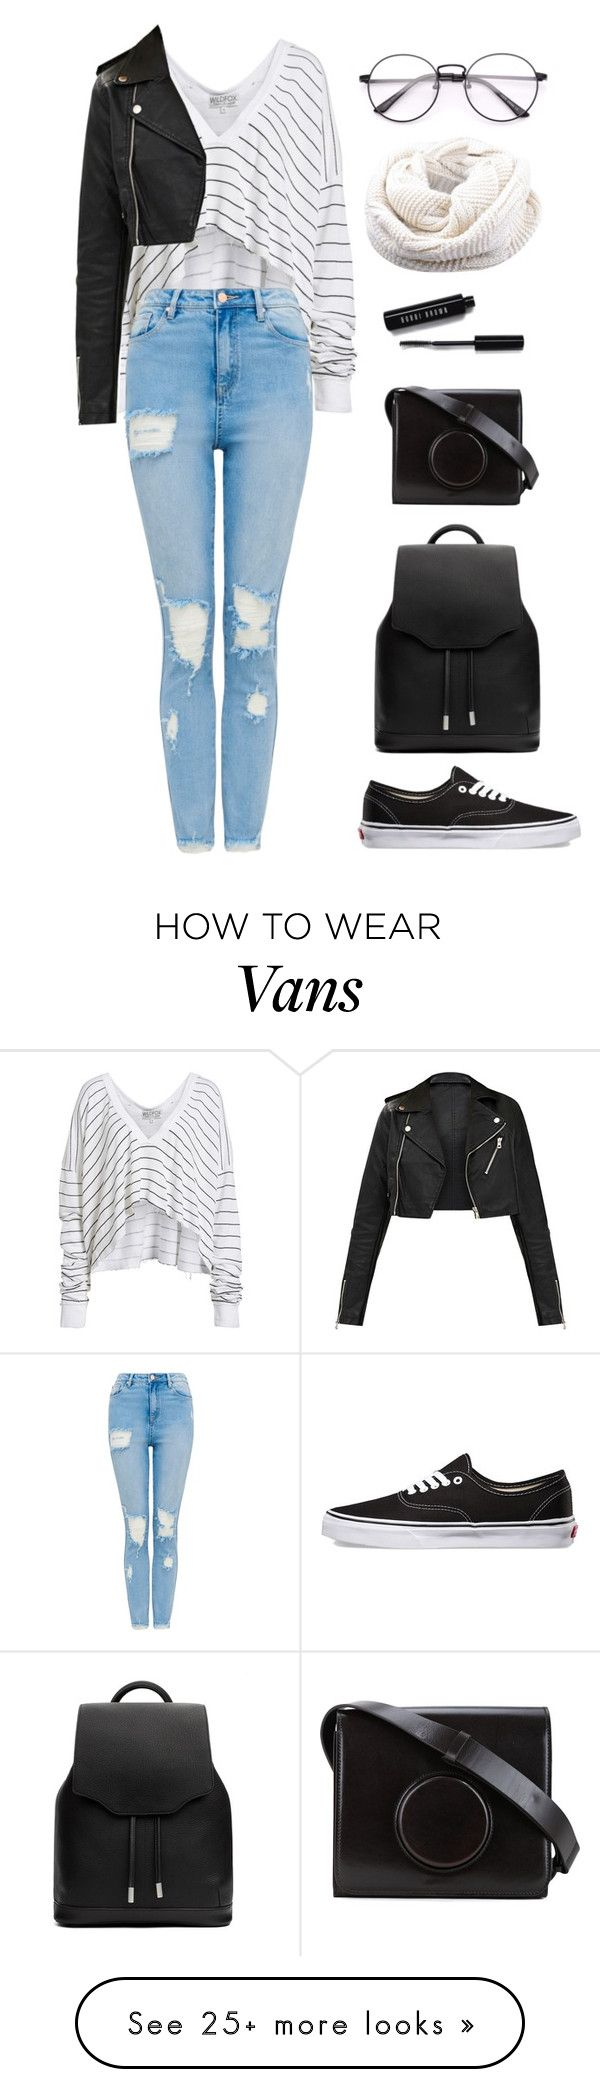 """""""Cosette"""" by mariposa-fashion-21 on Polyvore featuring Wildfox, Vans, Bobbi Brown Cosmetics, Lemaire and rag & bone"""